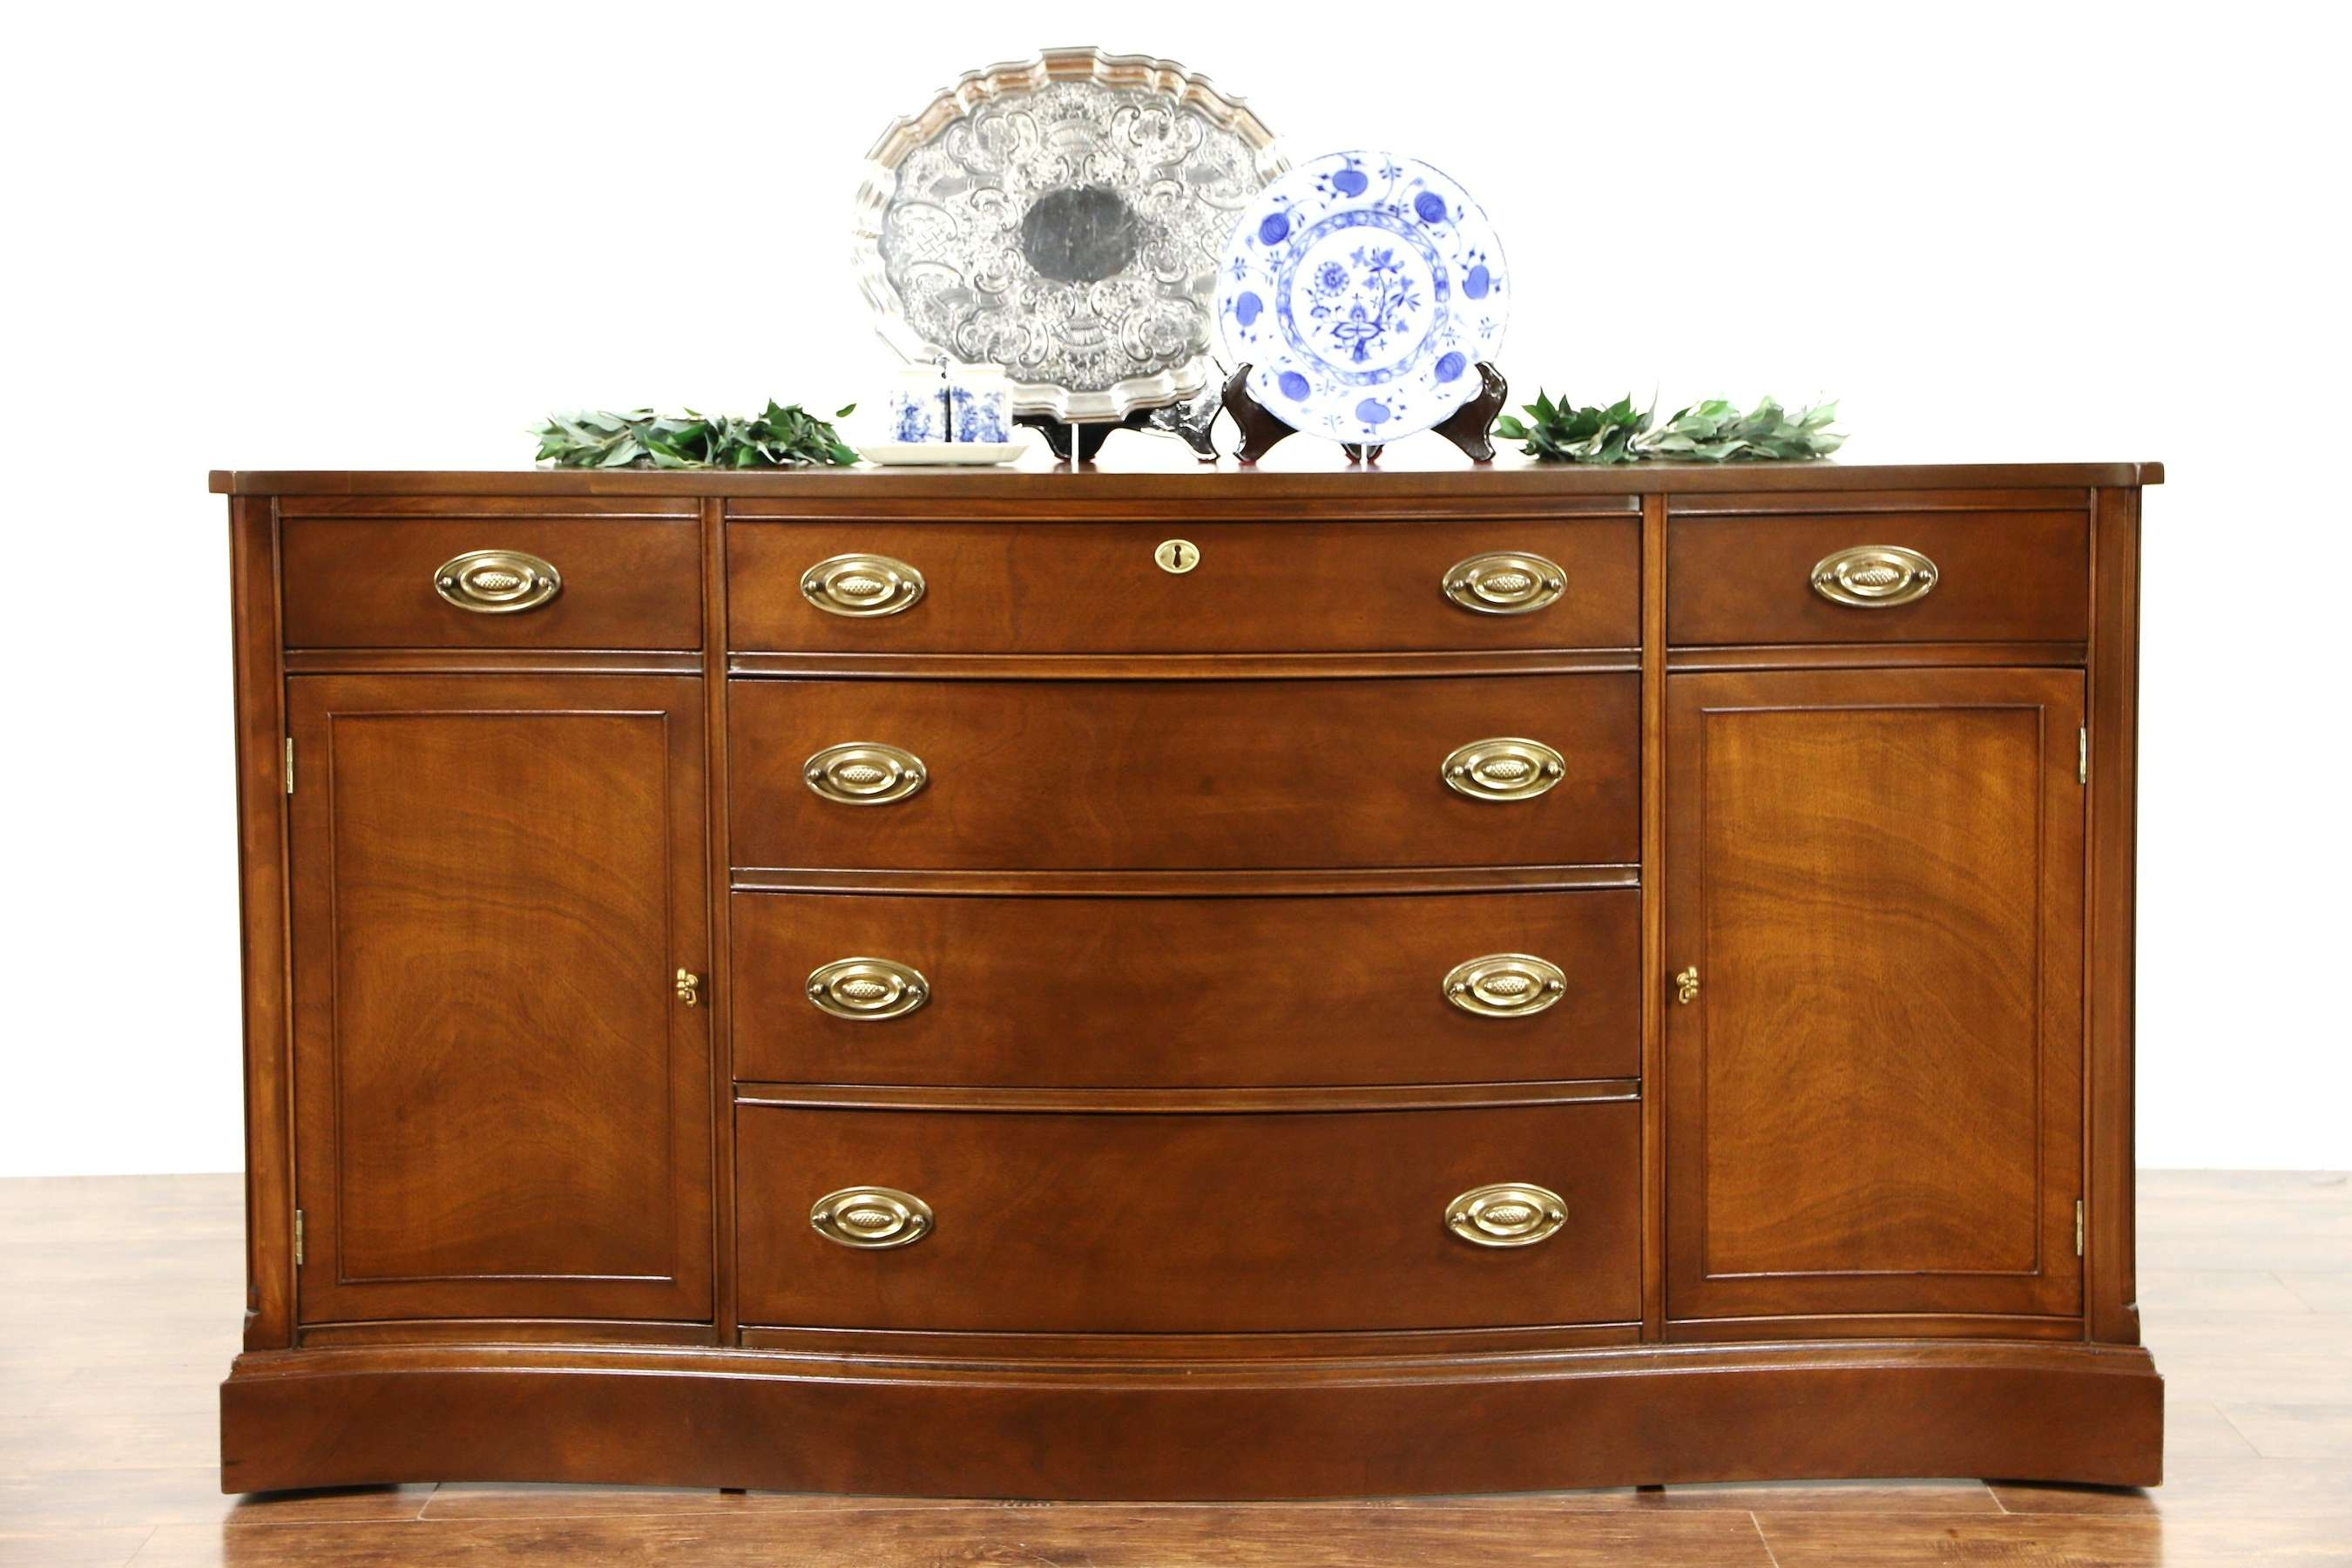 Sold – Traditional Vintage Mahogany Sideboard, Server Or Buffet Throughout Mahogany Sideboards Buffets (View 20 of 20)